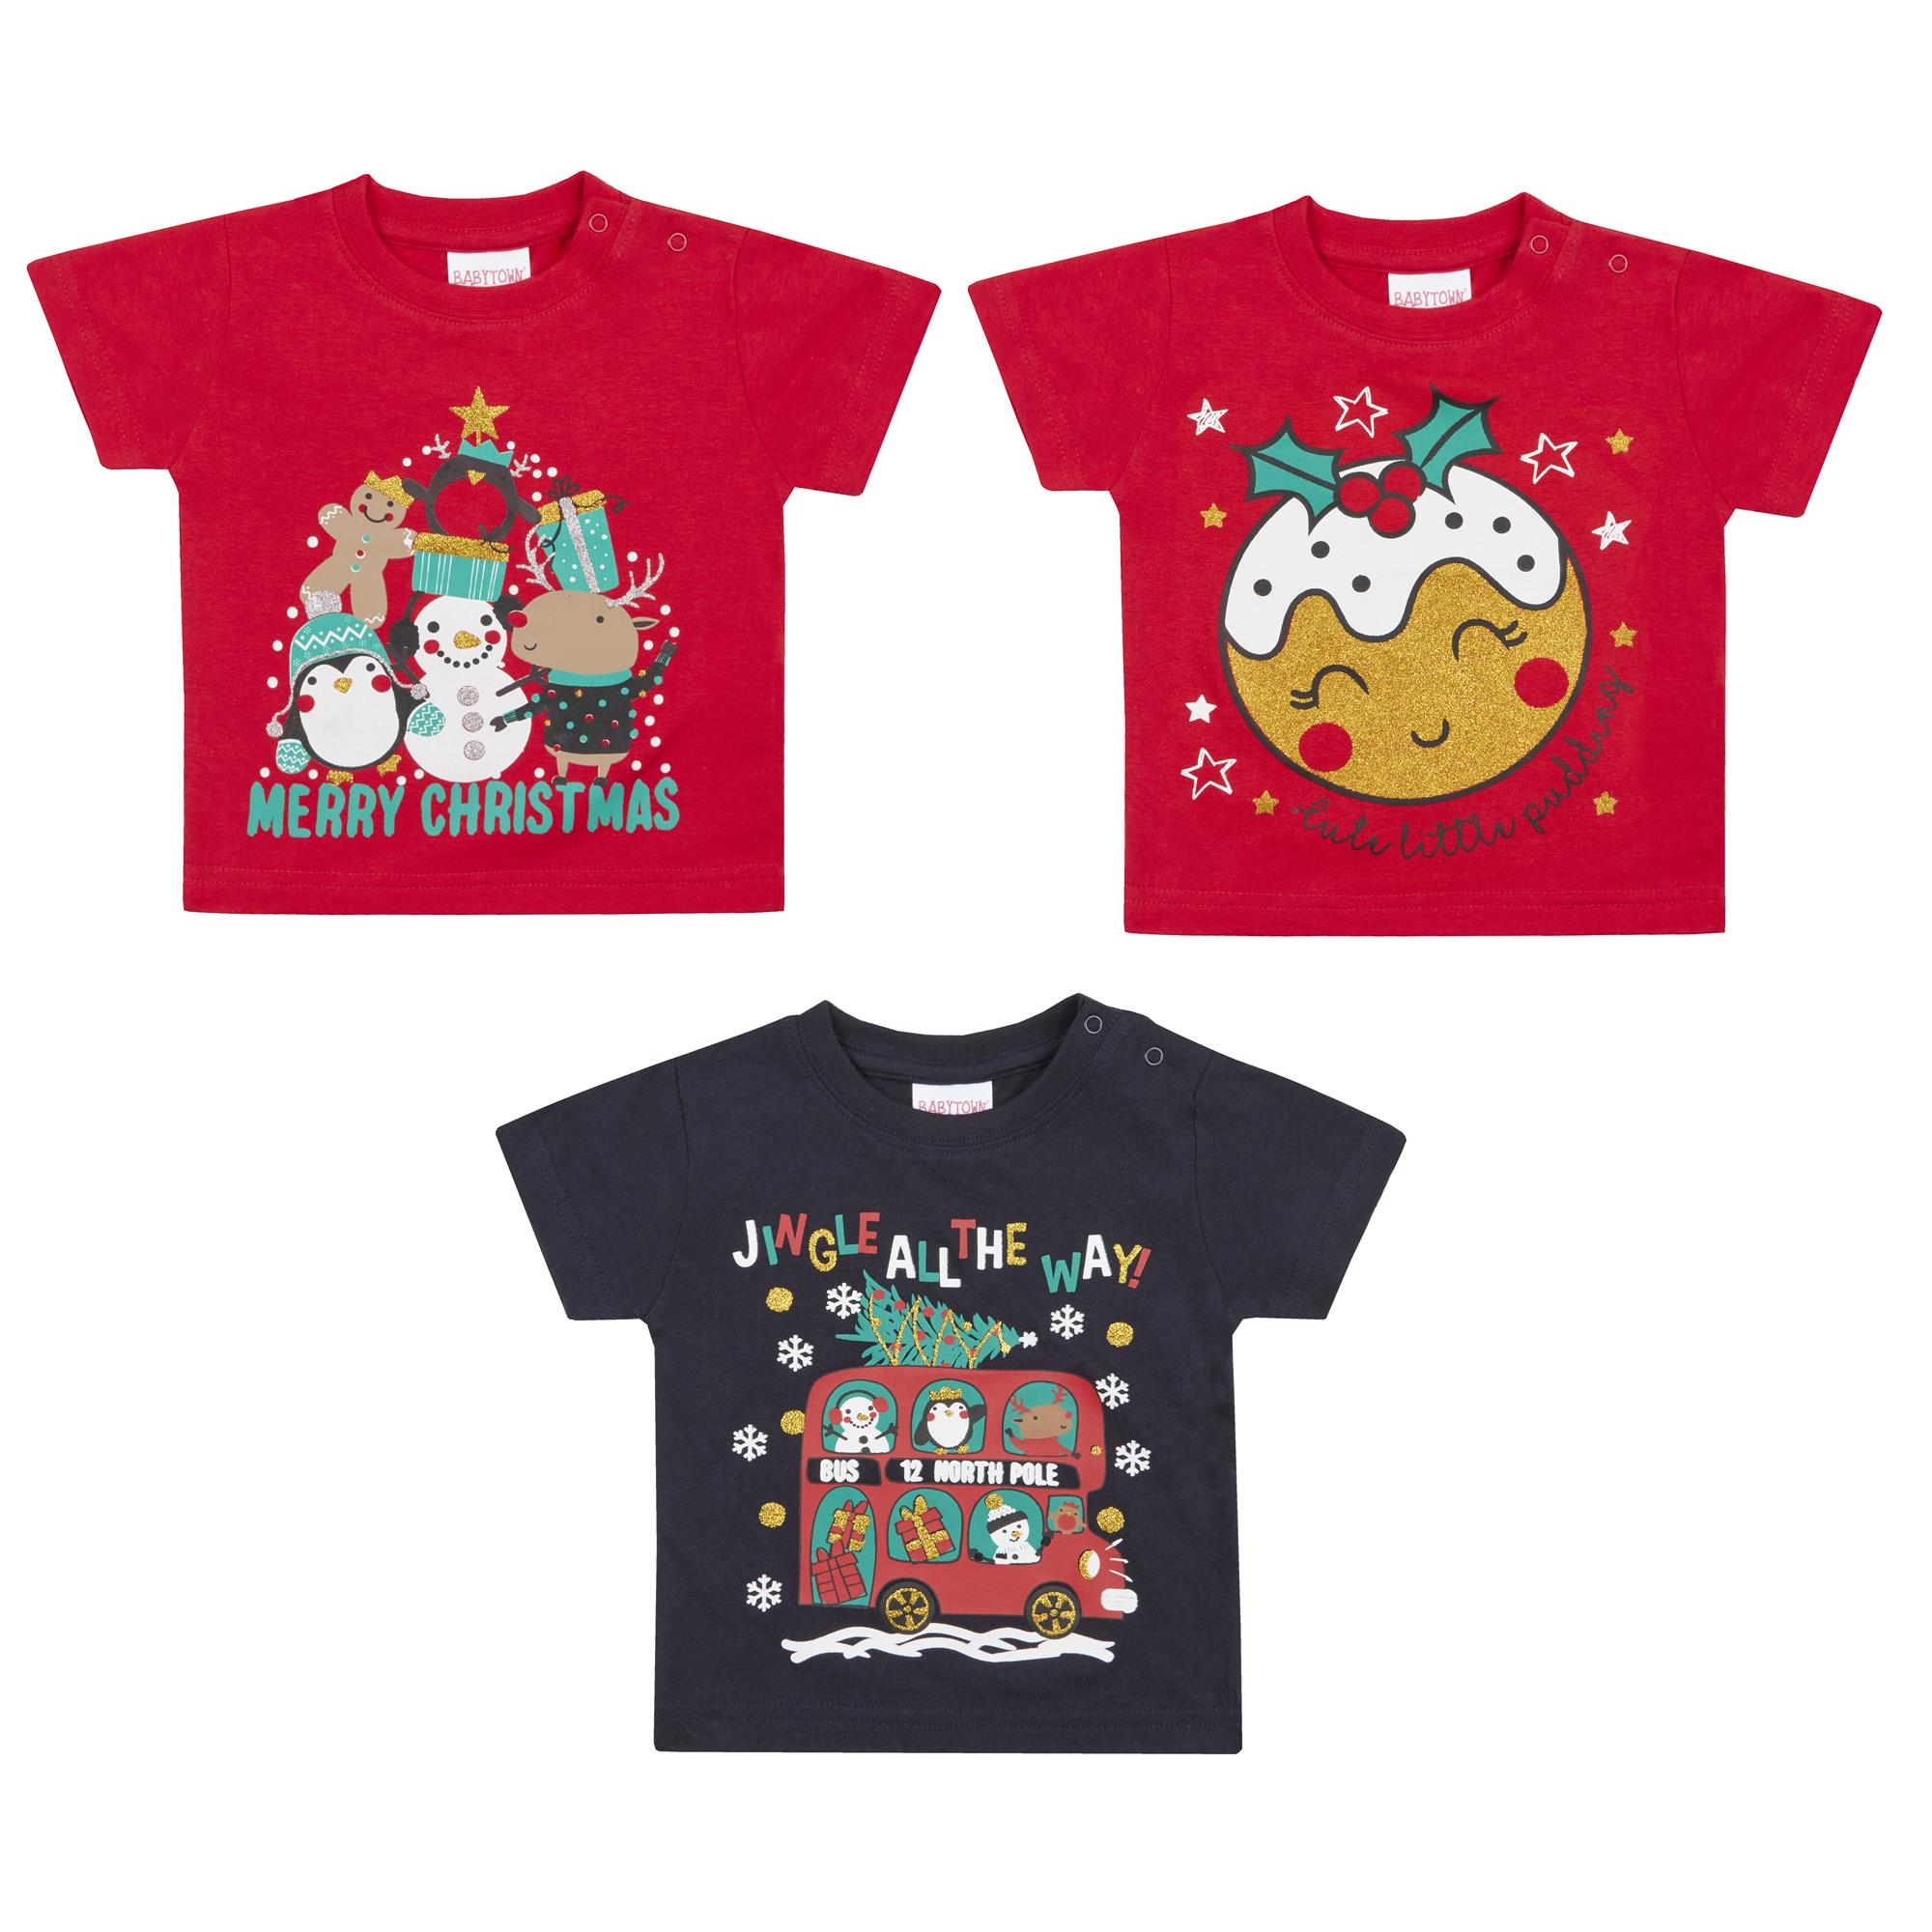 Babies Novelty Christmas T Shirts Stc Stores